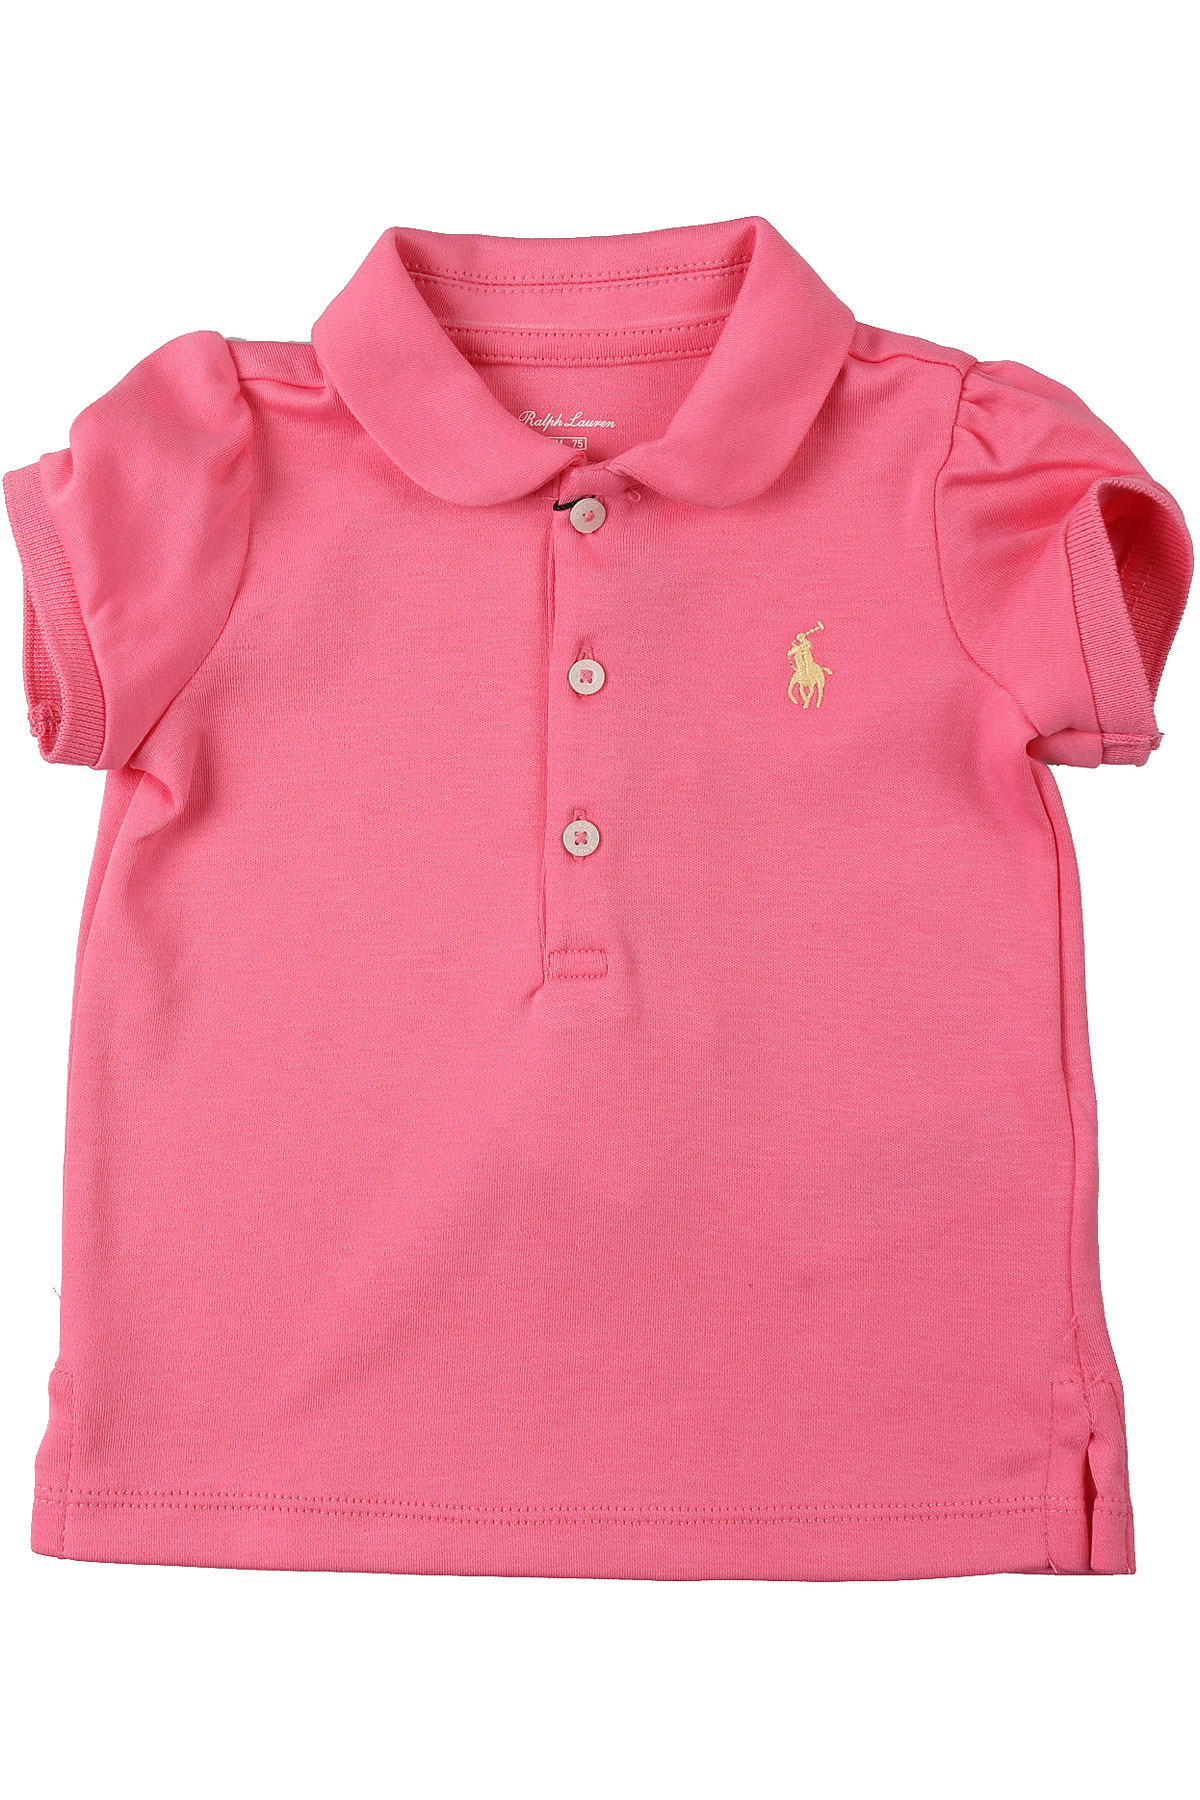 Ralph Lauren Baby Polo Shirt for Girls On Sale, Pink, Cotton, 2019, 12M 18M 2Y 6M 9M